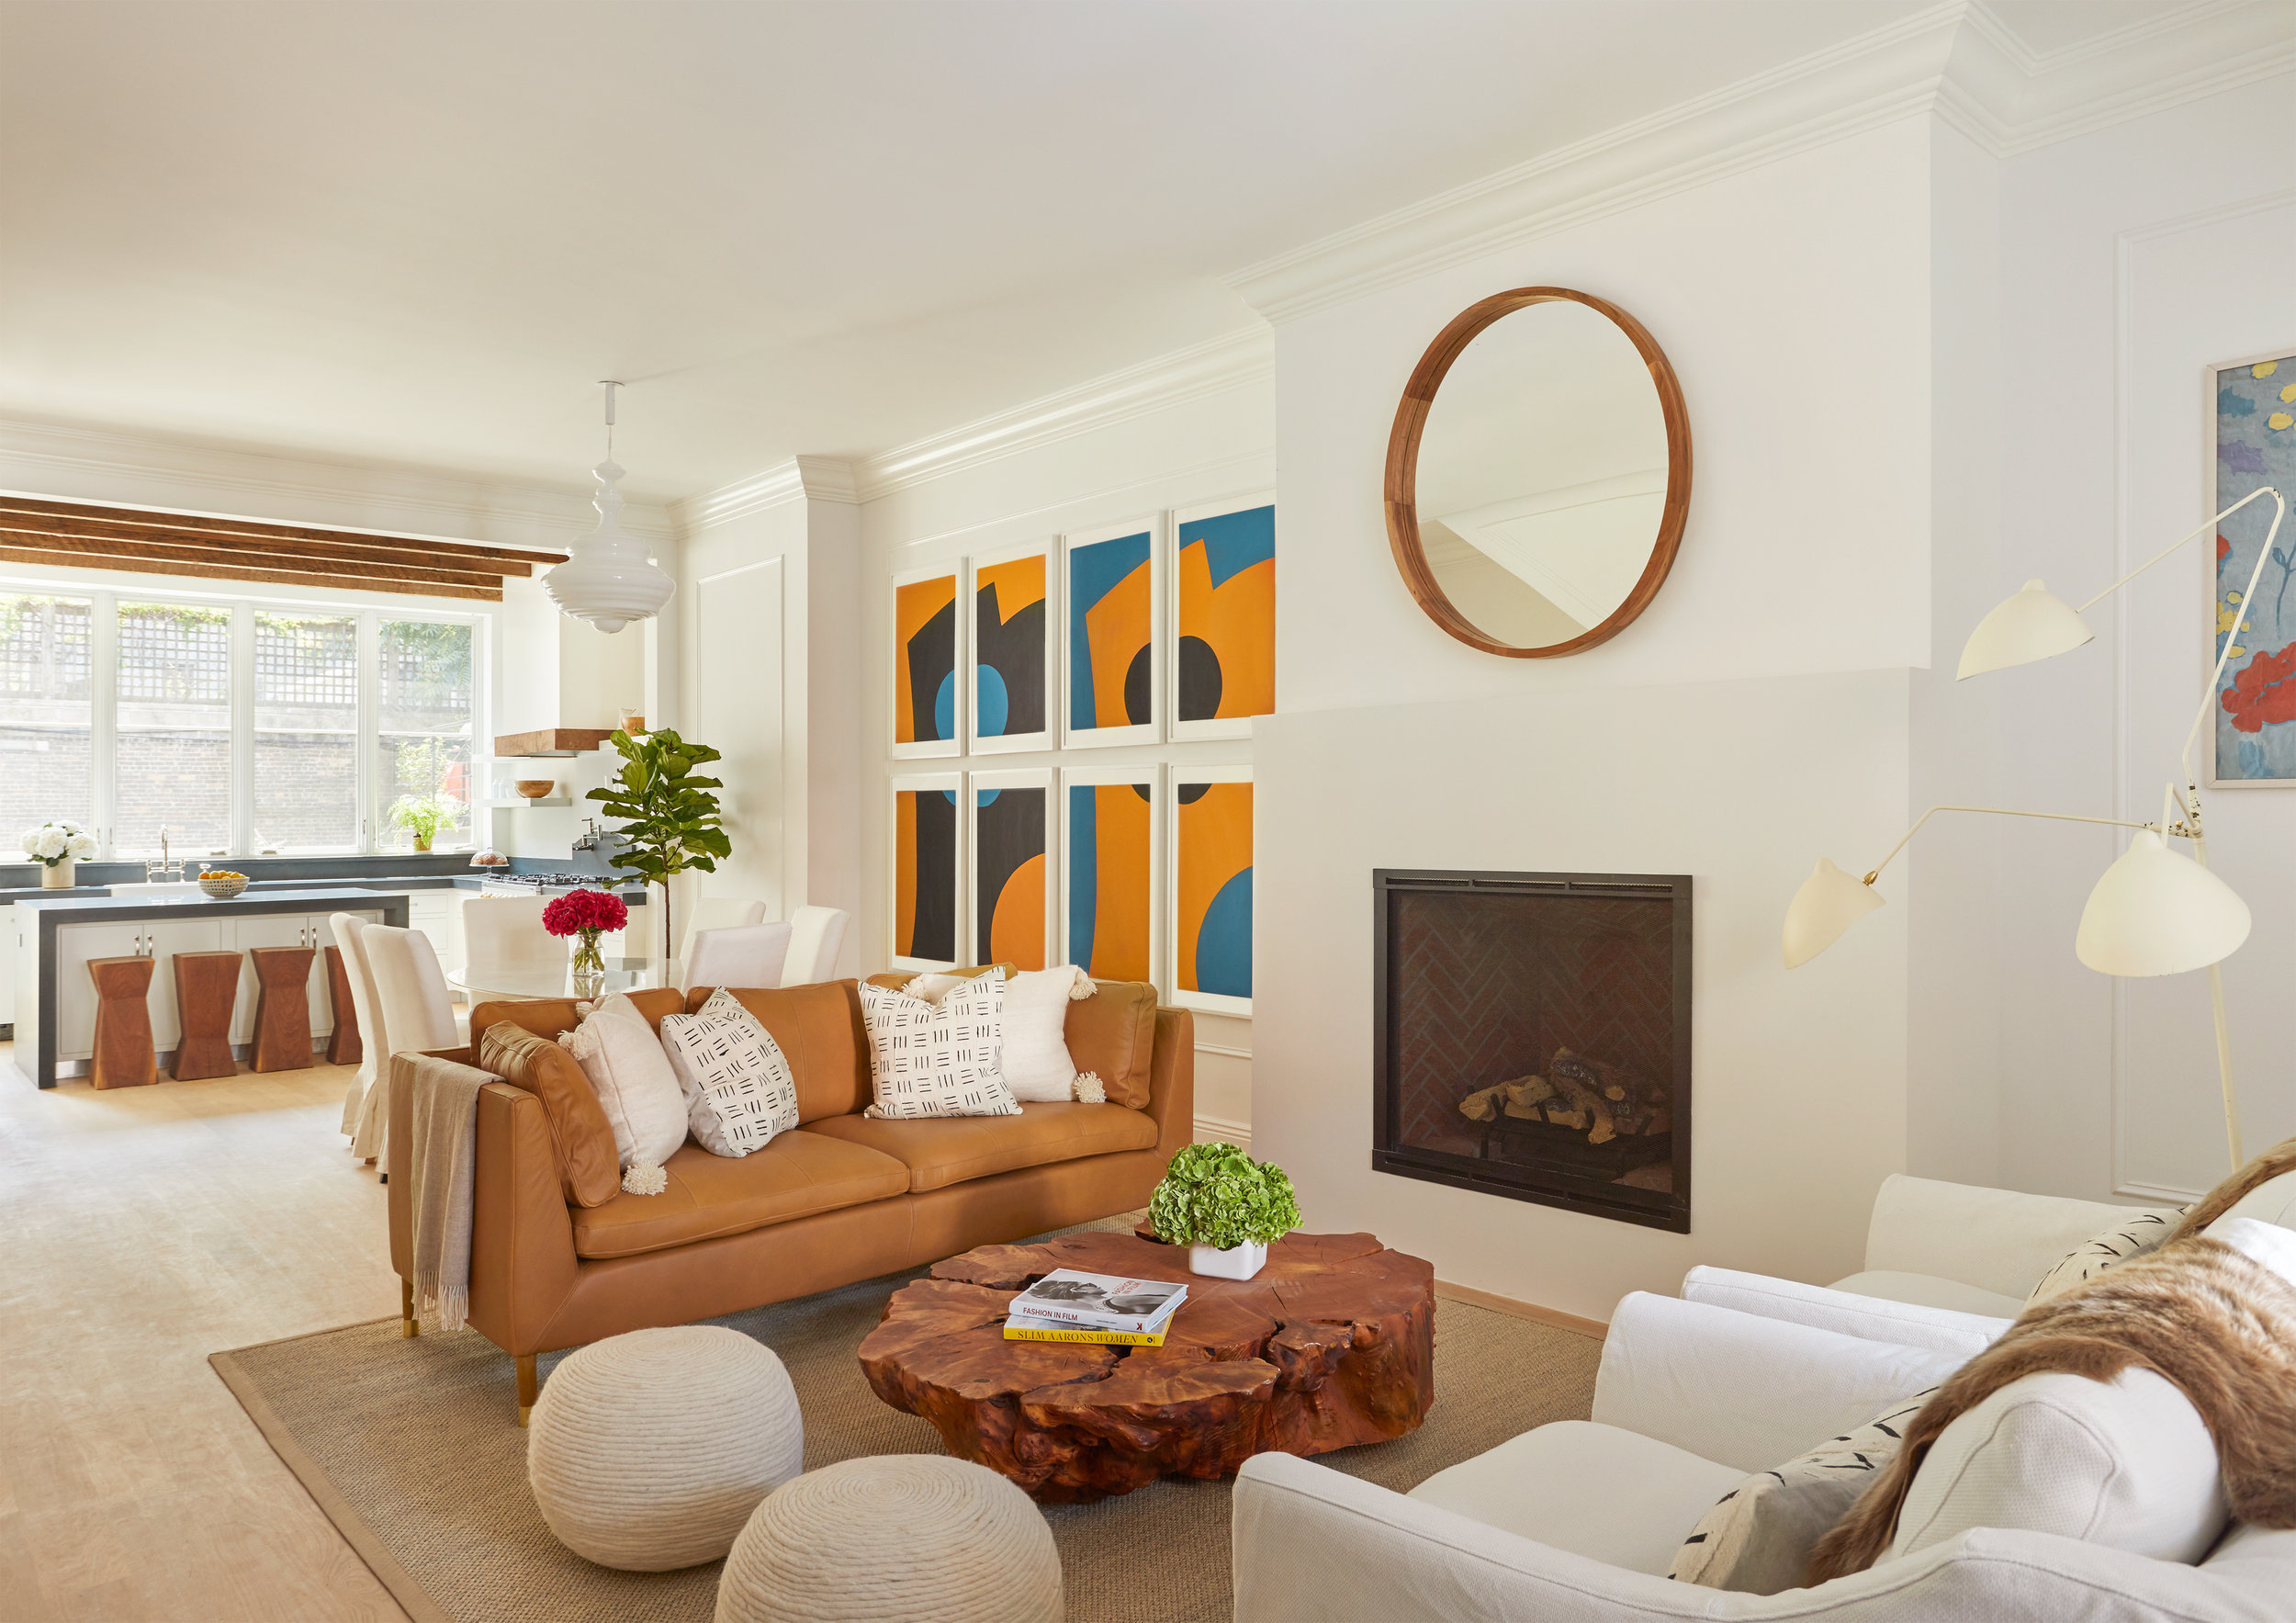 TBHCo_1706_56GarfieldPlace_177_V2_HiRes.jpg